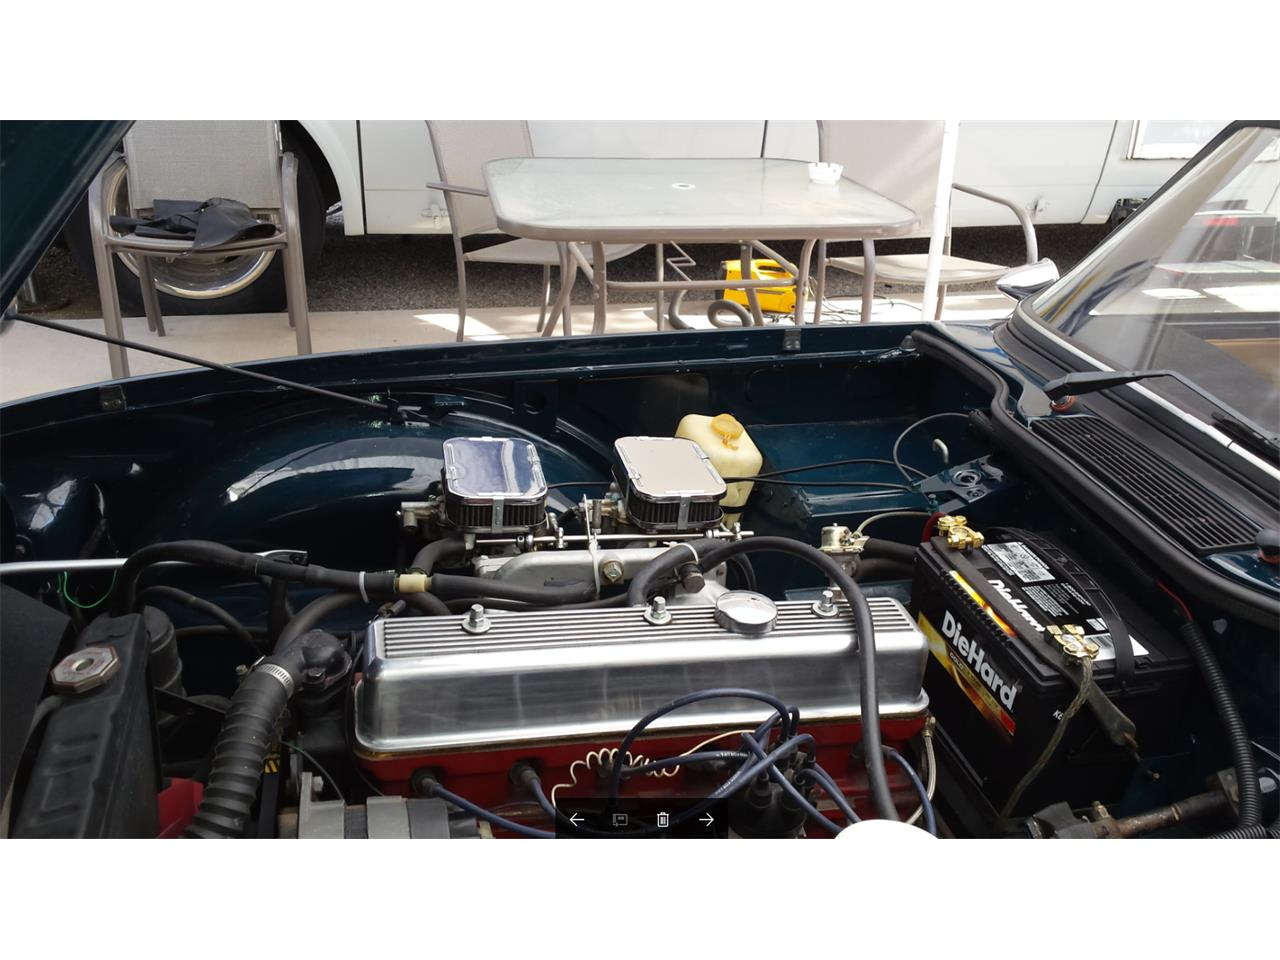 Large Picture of 1974 Triumph TR6 located in Yuma Arizona Offered by a Private Seller - JUCJ